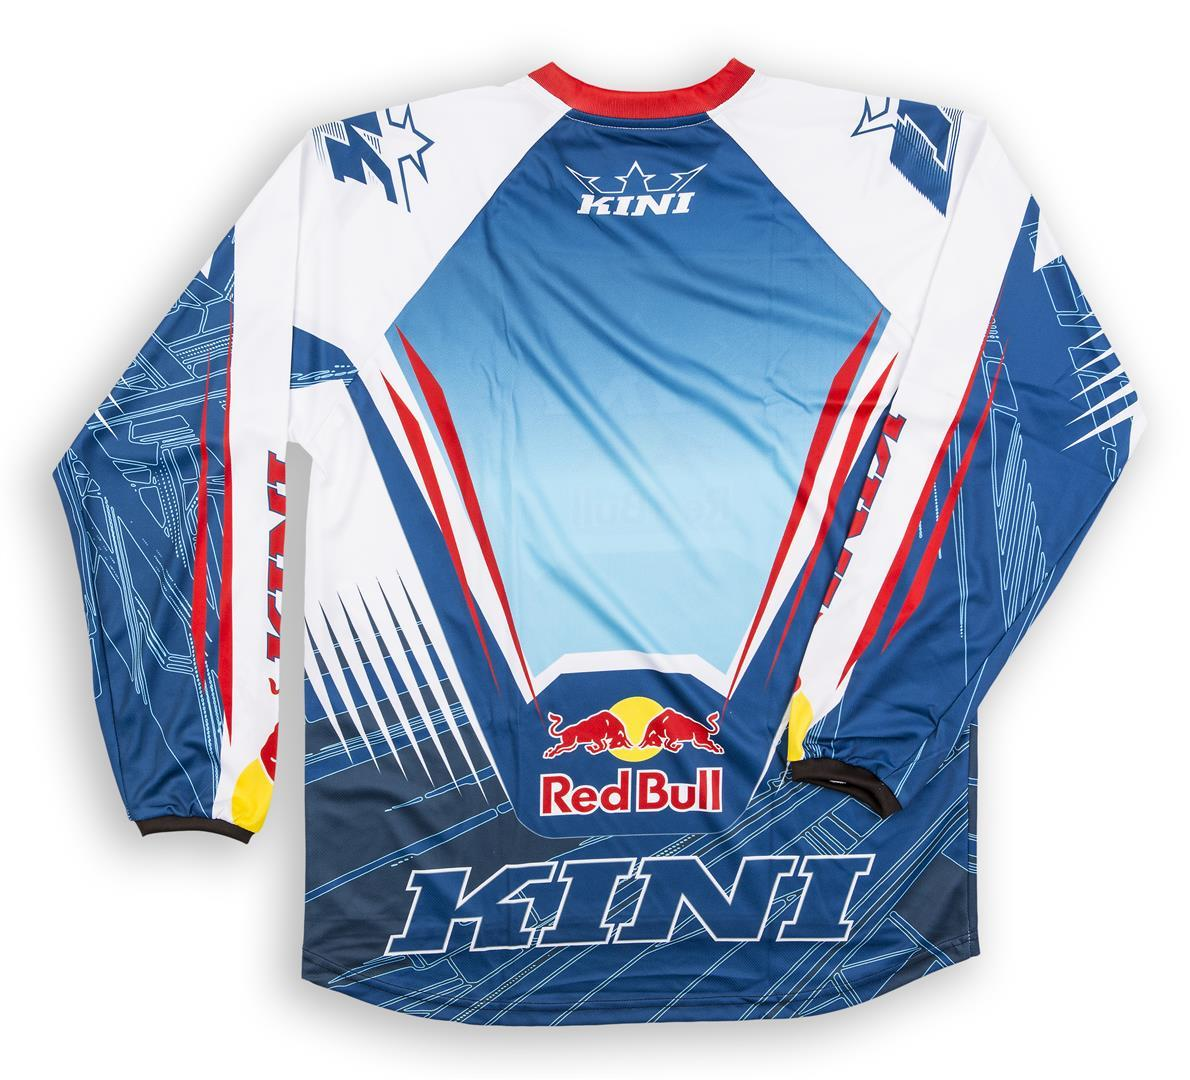 75eea62d8c Anky Competition Jacket: Navy Competitors Compete With Old Navy: KINI Red  Bull Competition Shirt Navy White